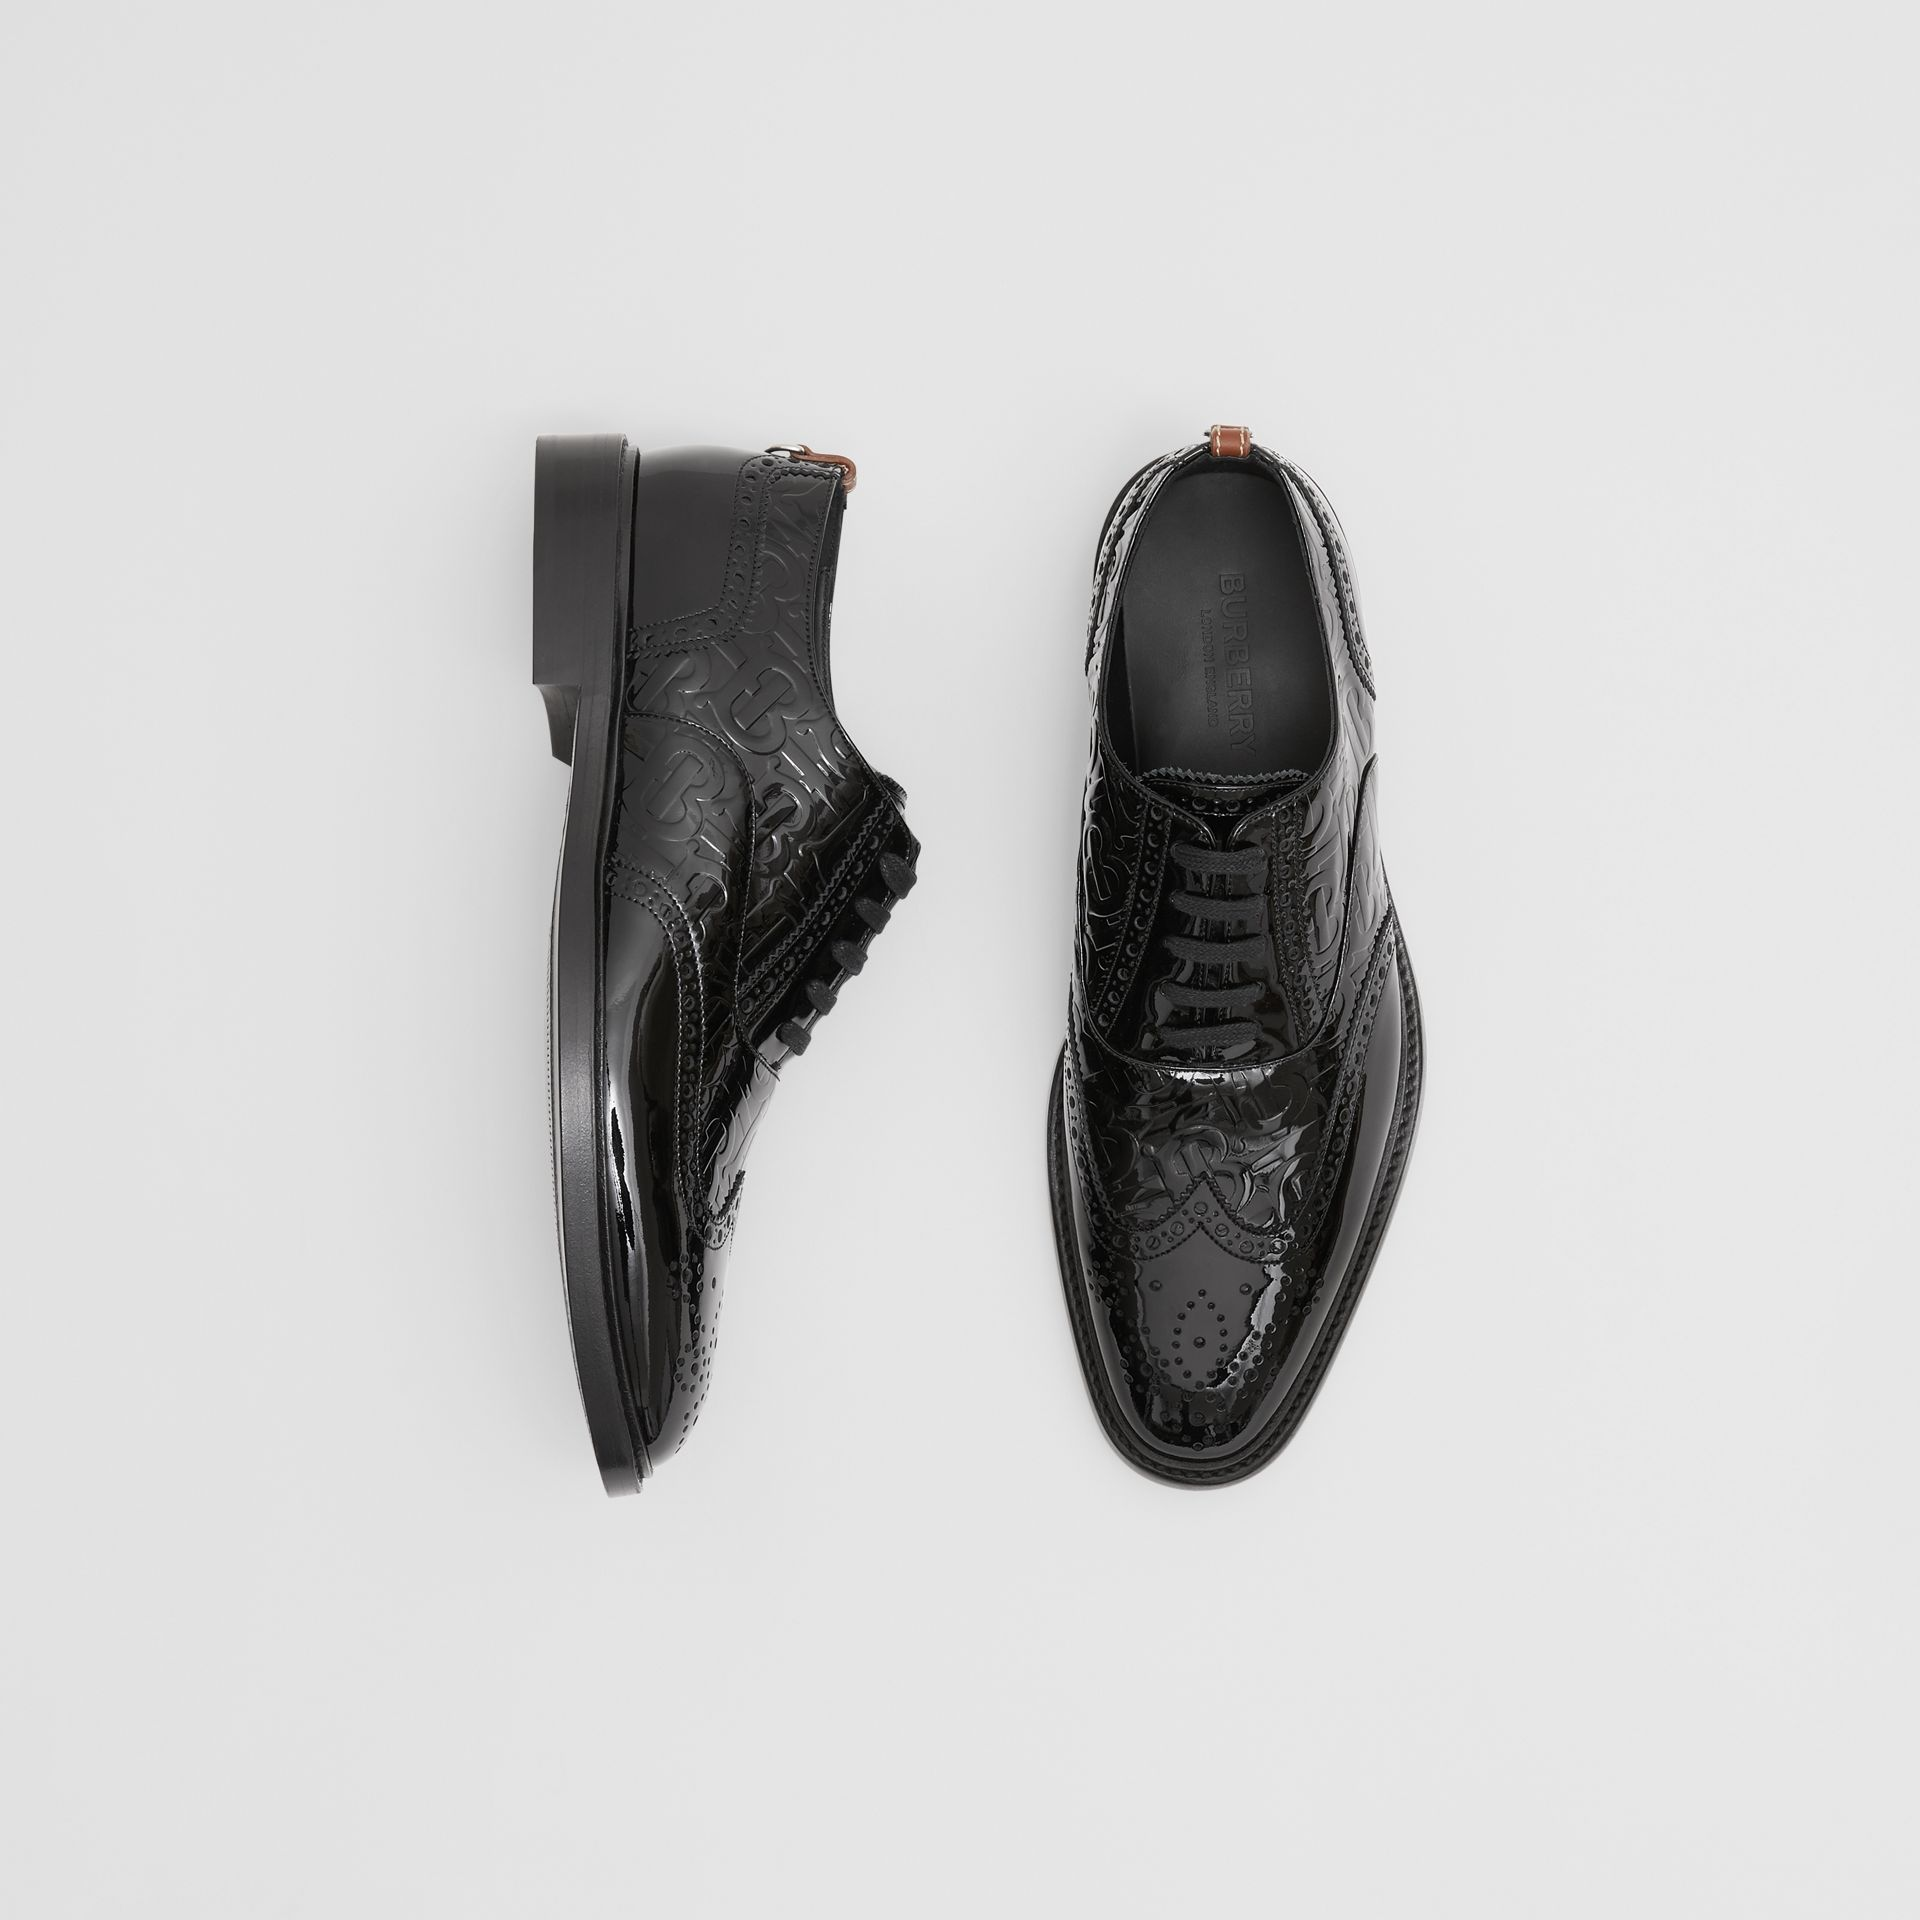 D-ring Detail Monogram Patent Leather Brogues in Black - Men | Burberry - gallery image 0